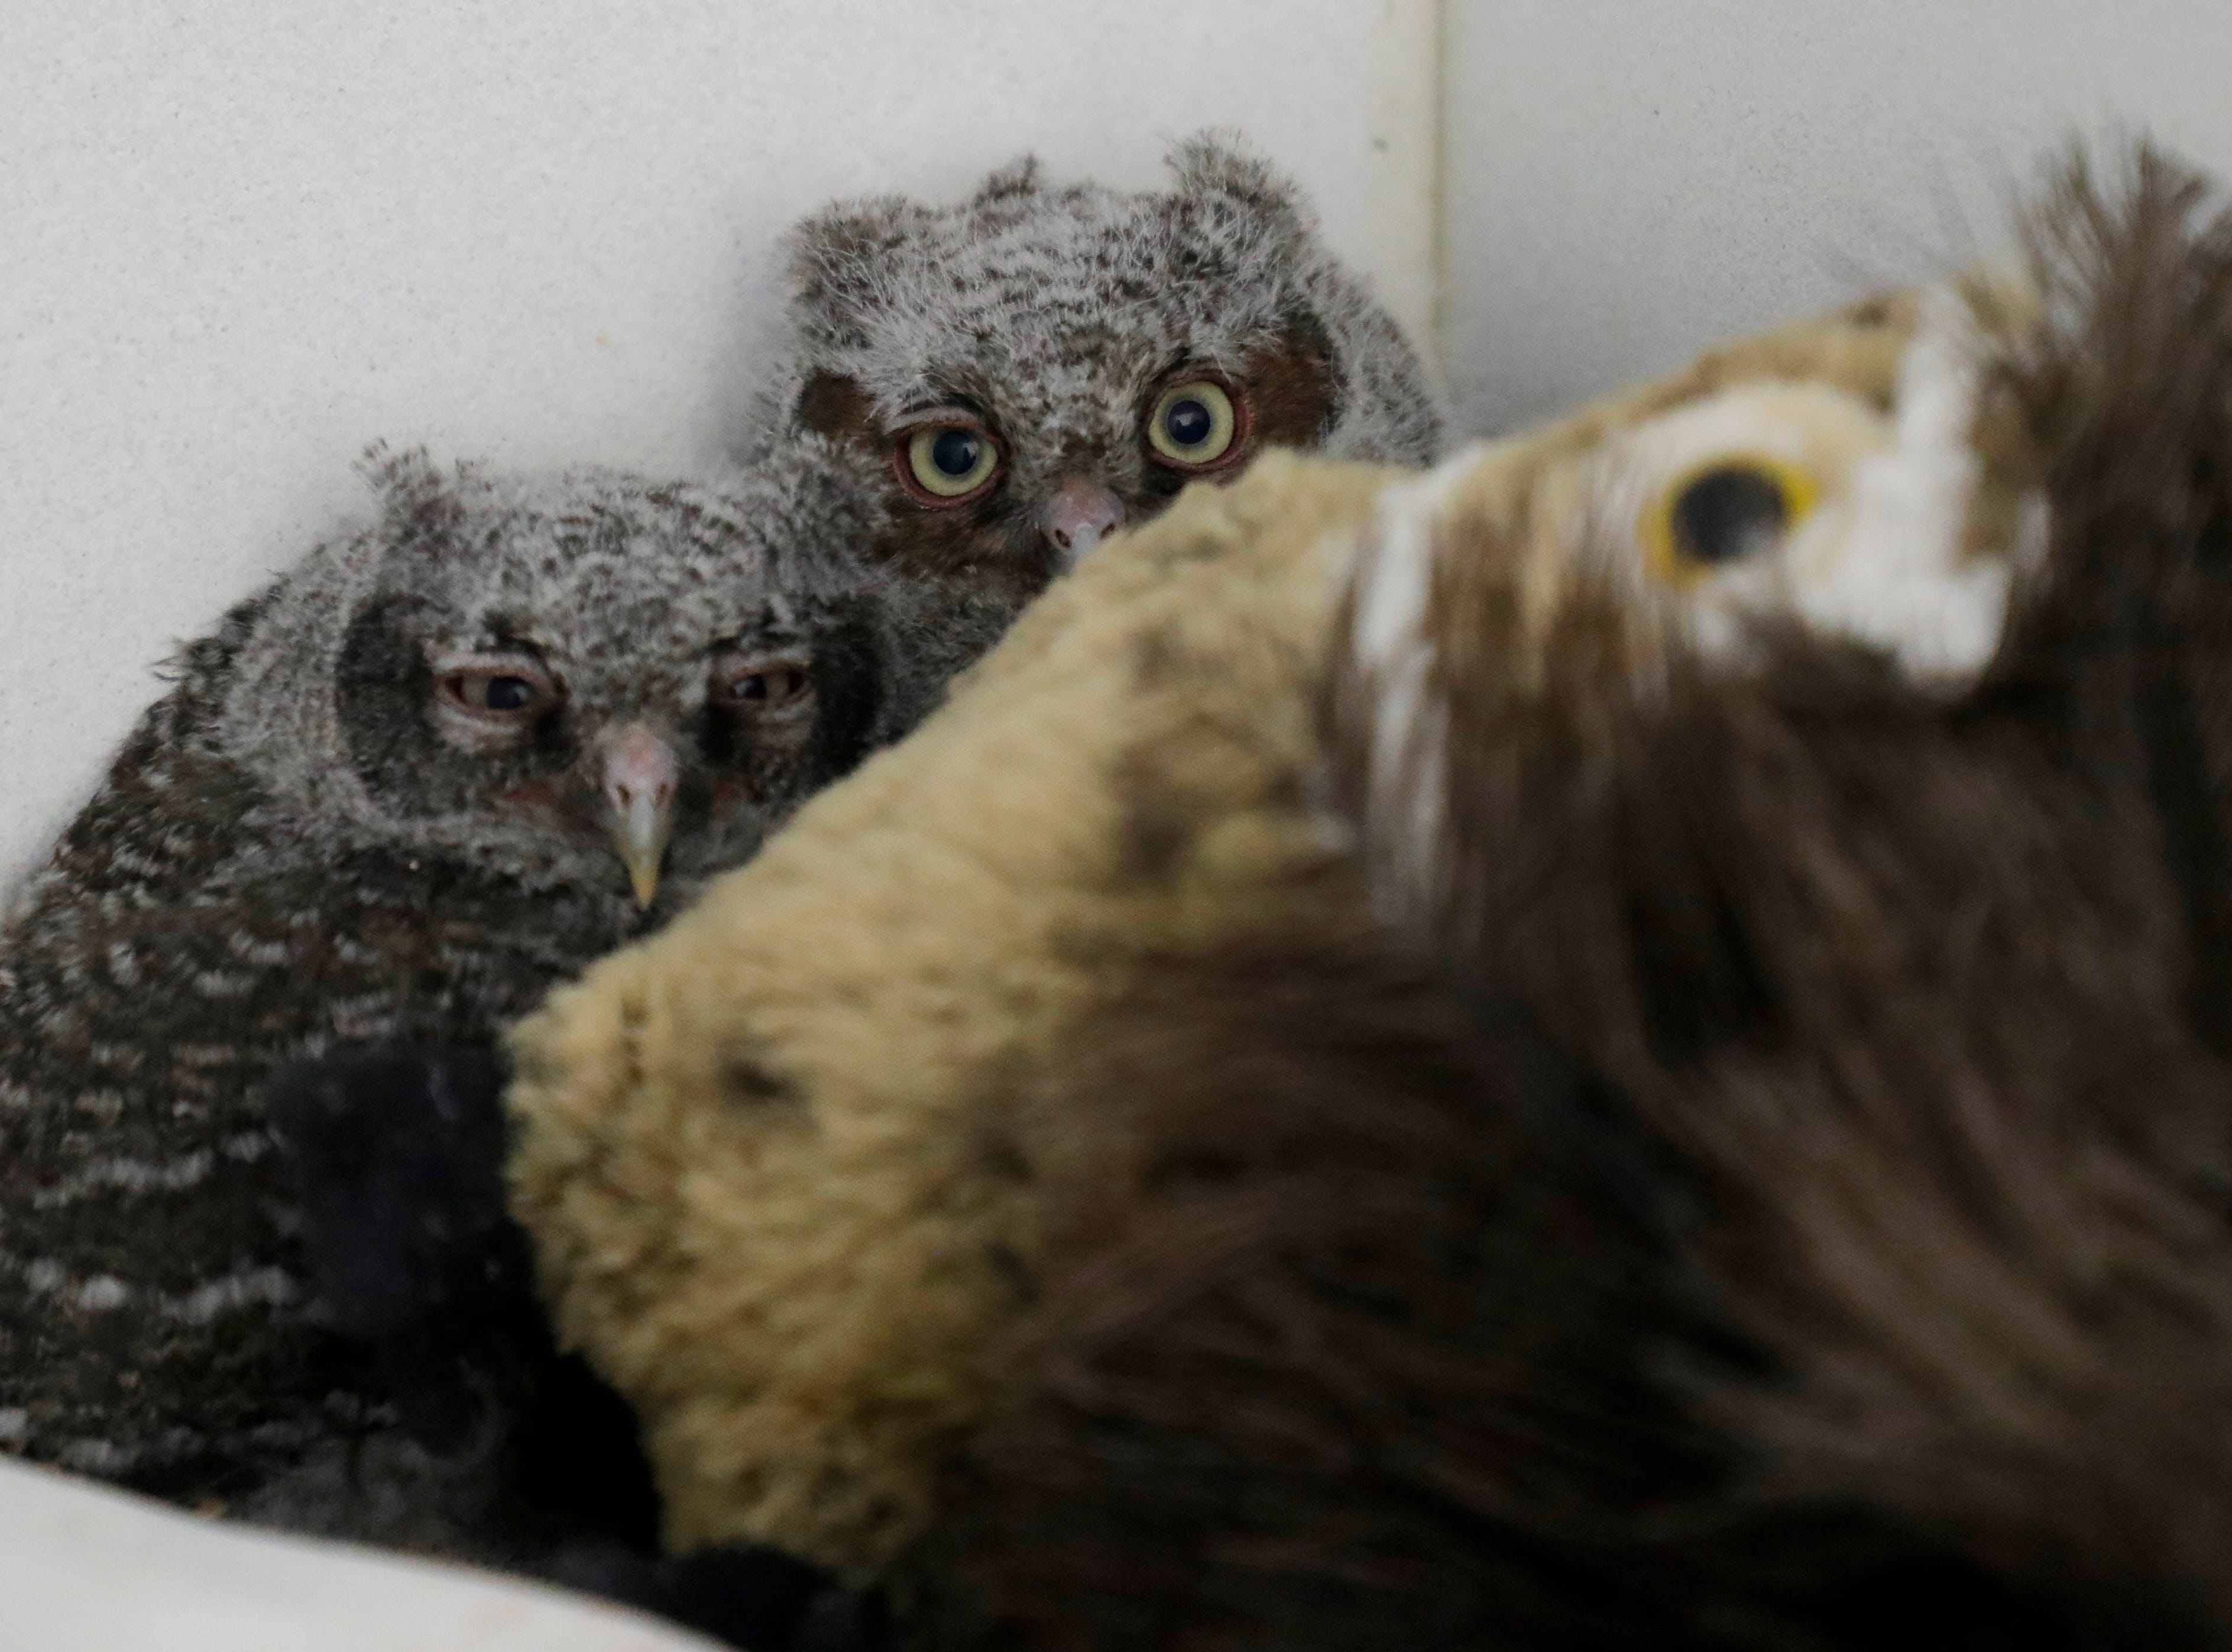 Baby screech owls hide shyly in their enclosure at the St. Francis Wildlife Hospital Monday, May 13, 2019.